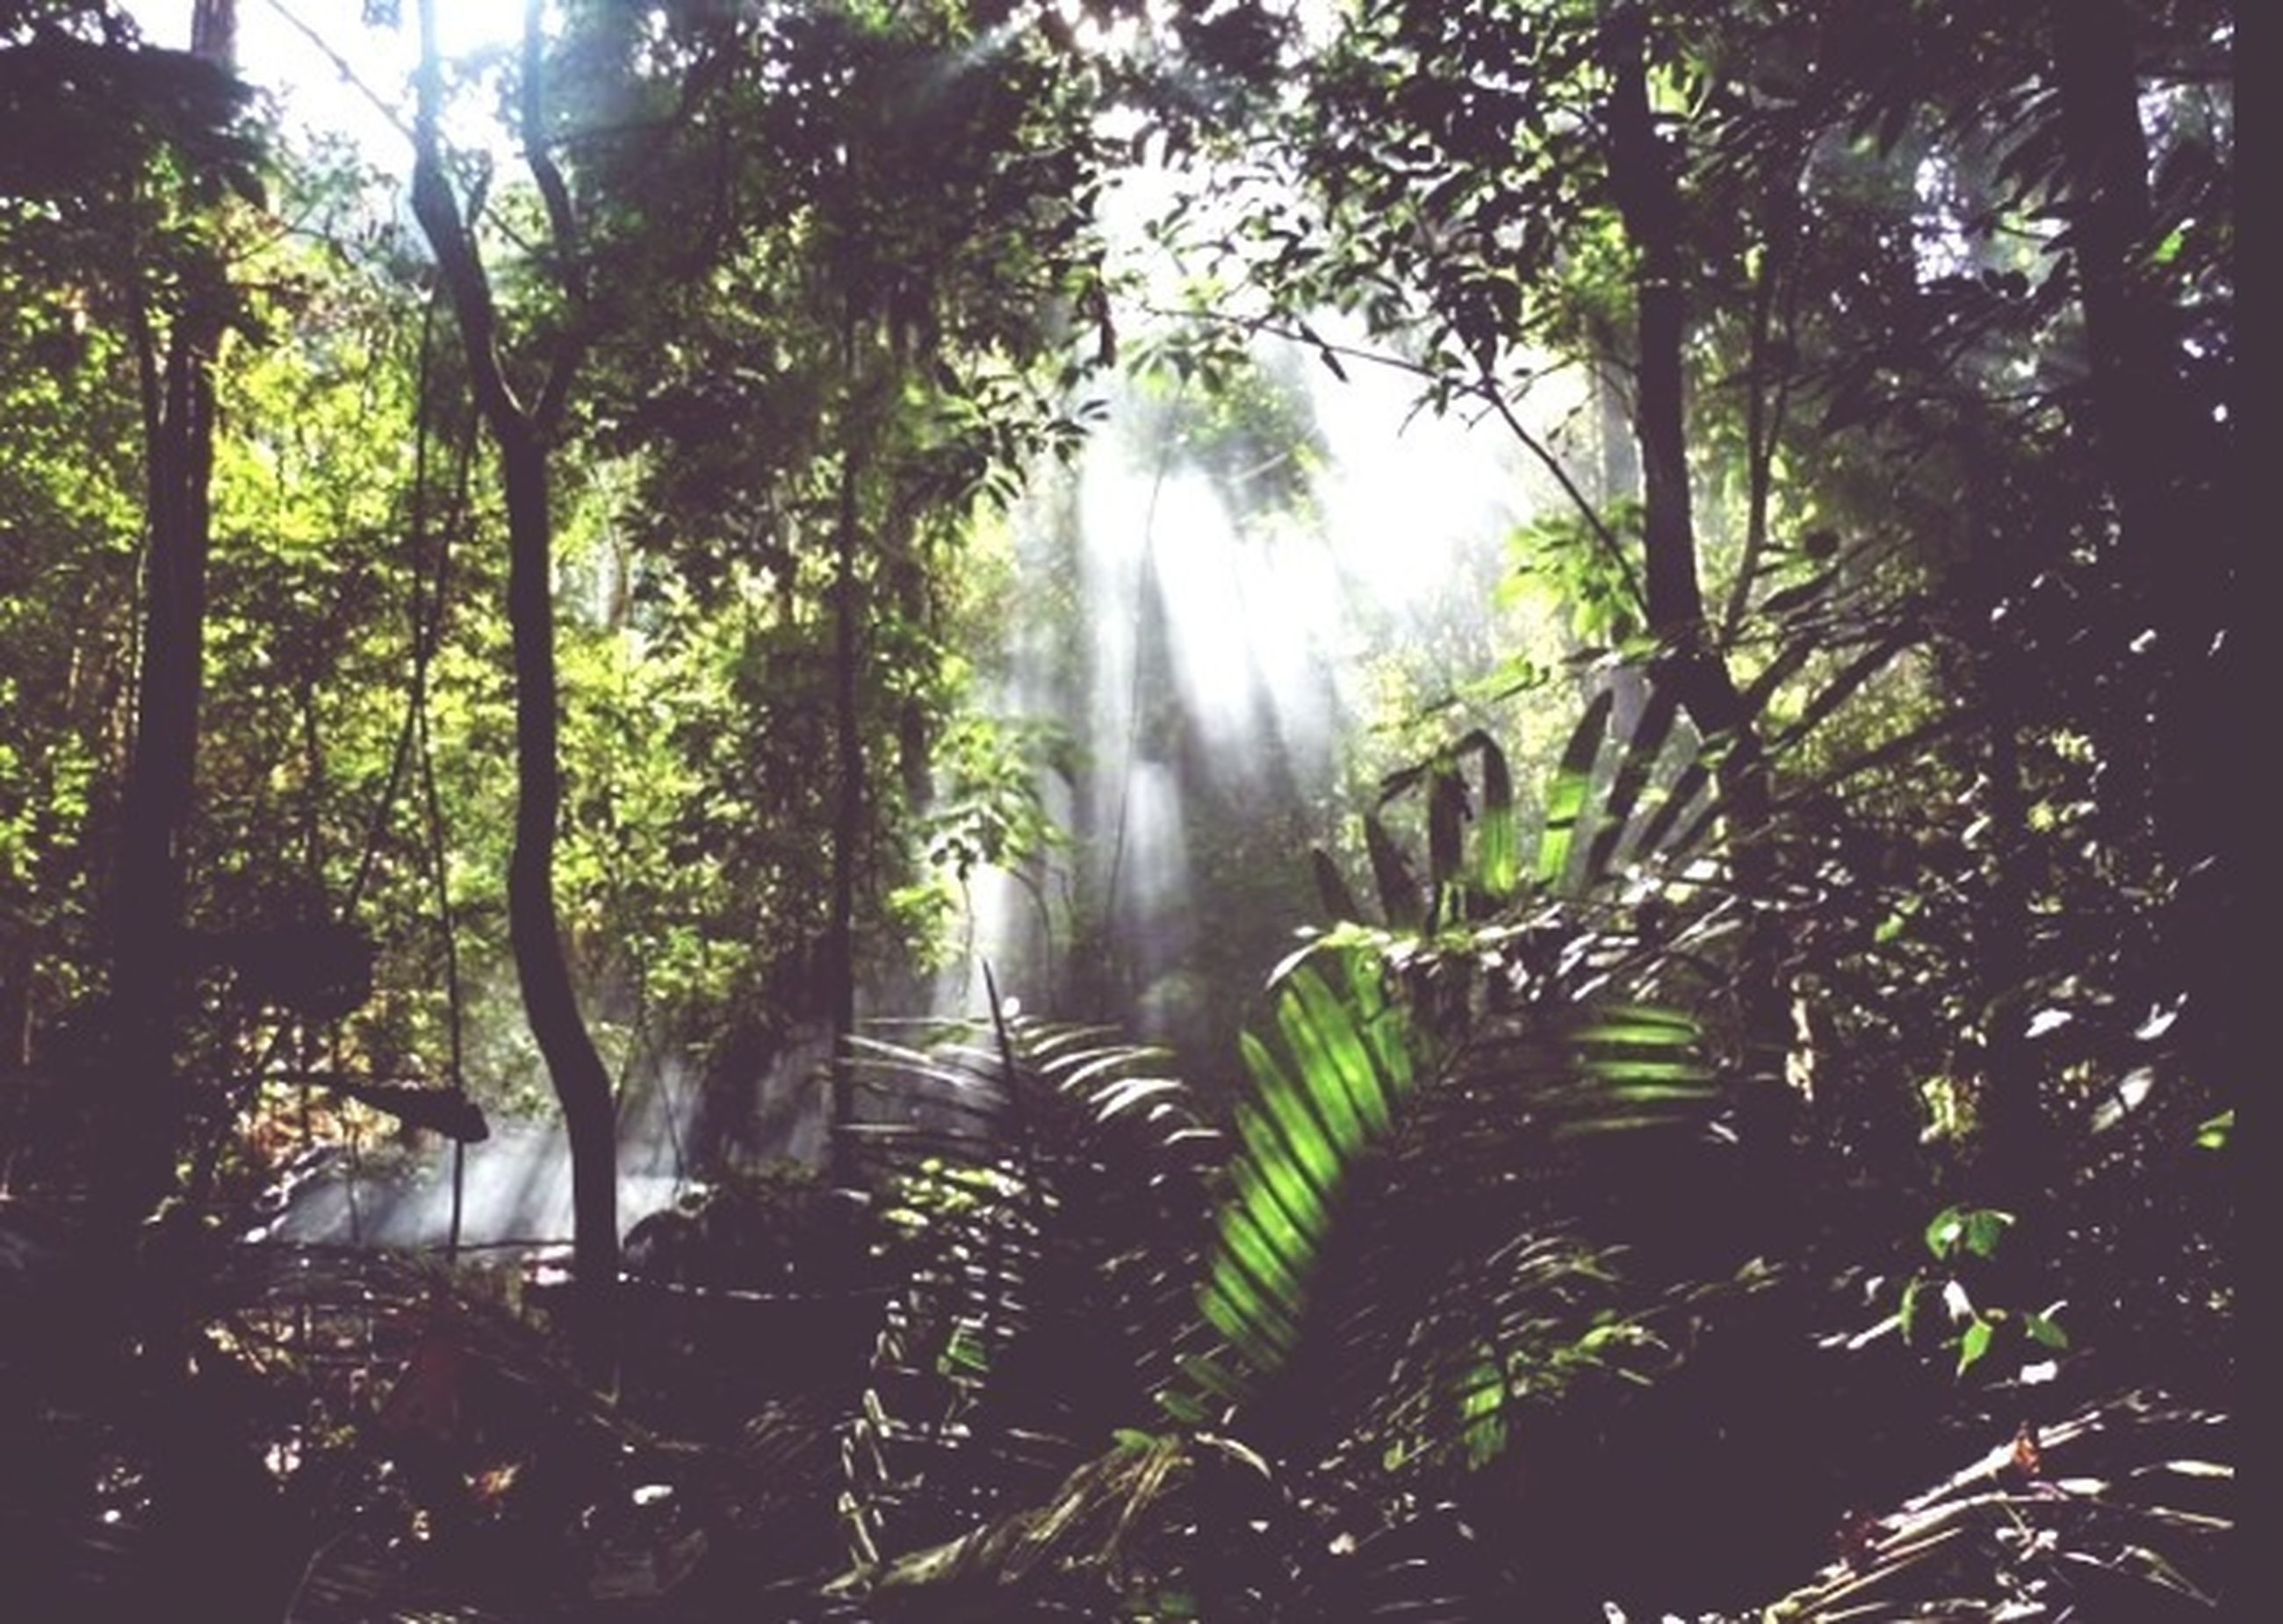 tree, growth, low angle view, forest, nature, tranquility, green color, sunlight, beauty in nature, branch, tree trunk, sunbeam, palm tree, scenics, leaf, day, tranquil scene, lush foliage, lens flare, outdoors